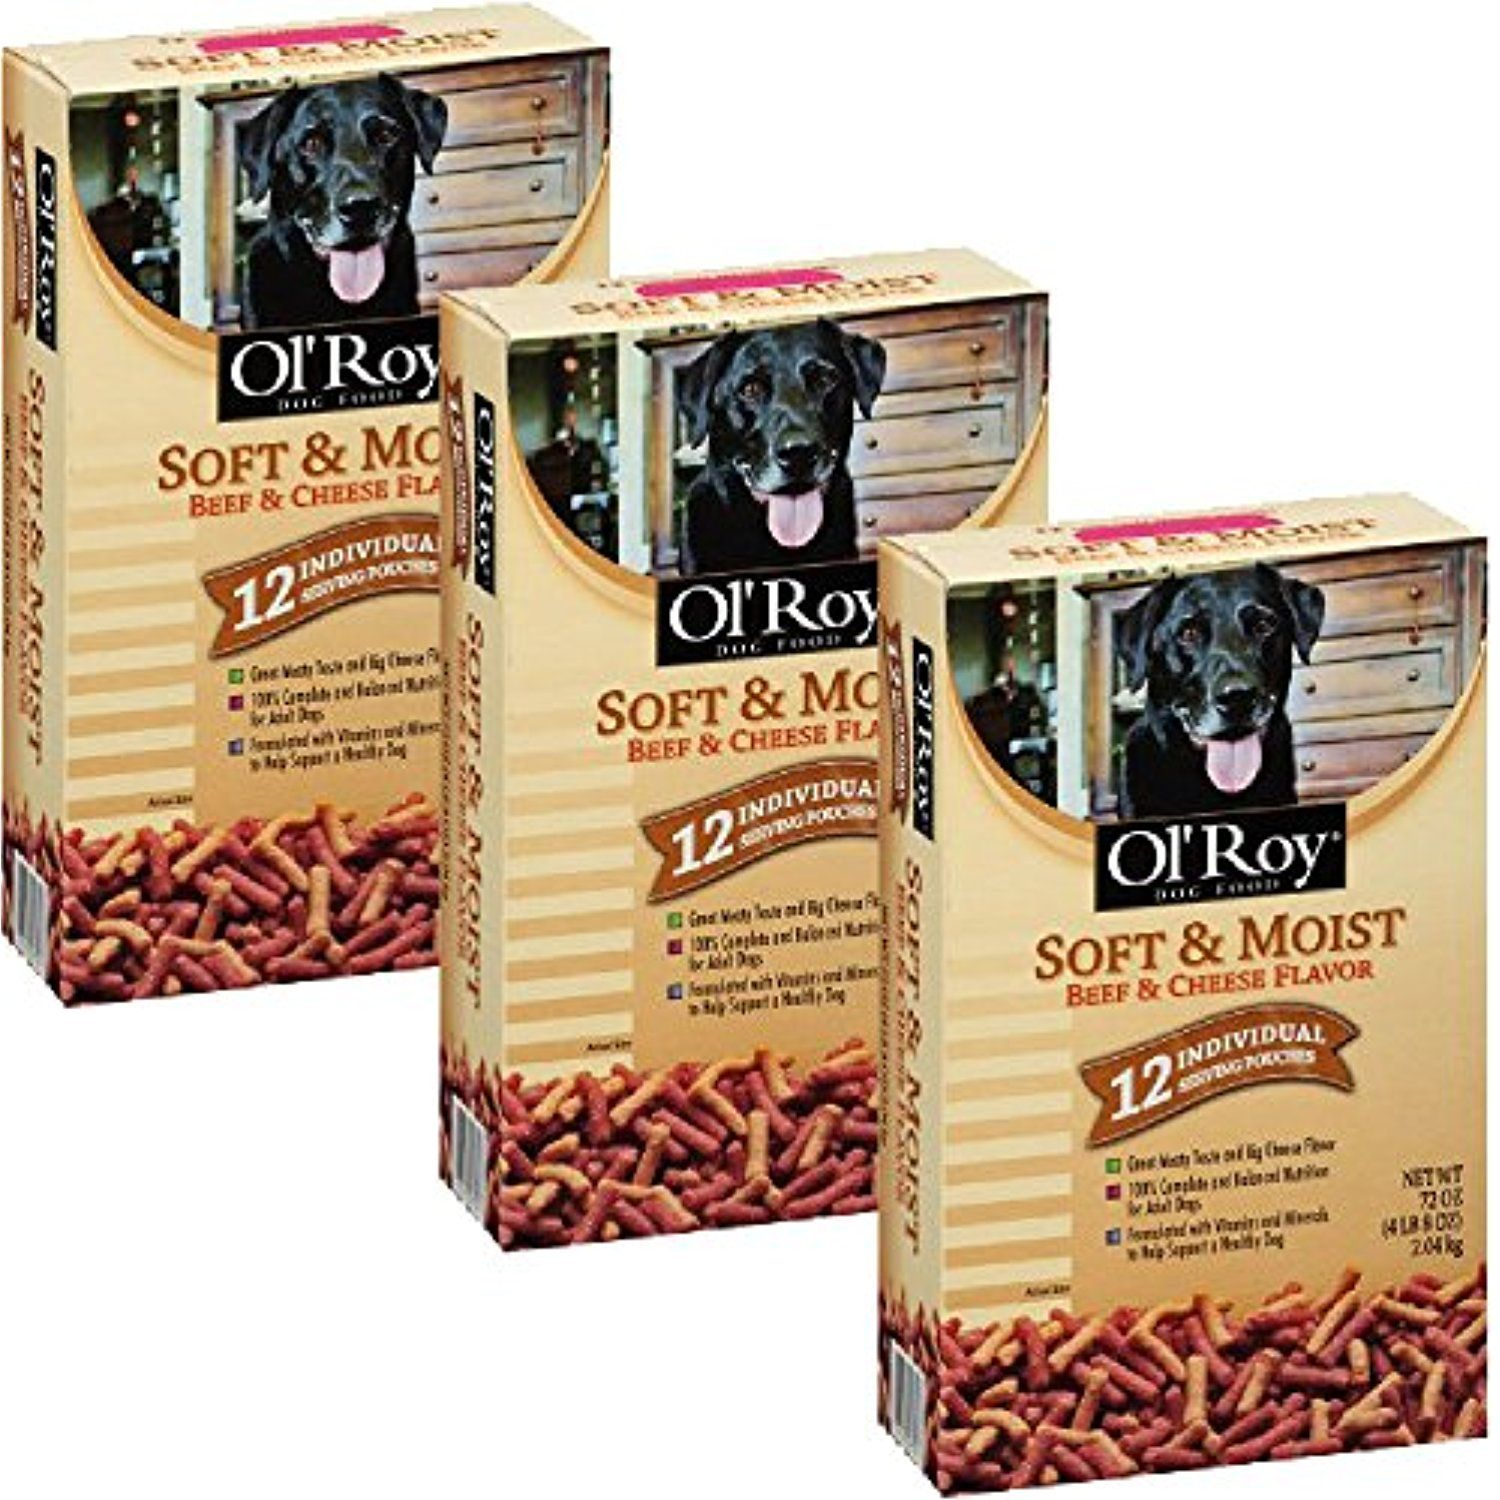 Ol Roy Soft Moist Beef Cheese Flavor Dog Food 72 Oz Box 12